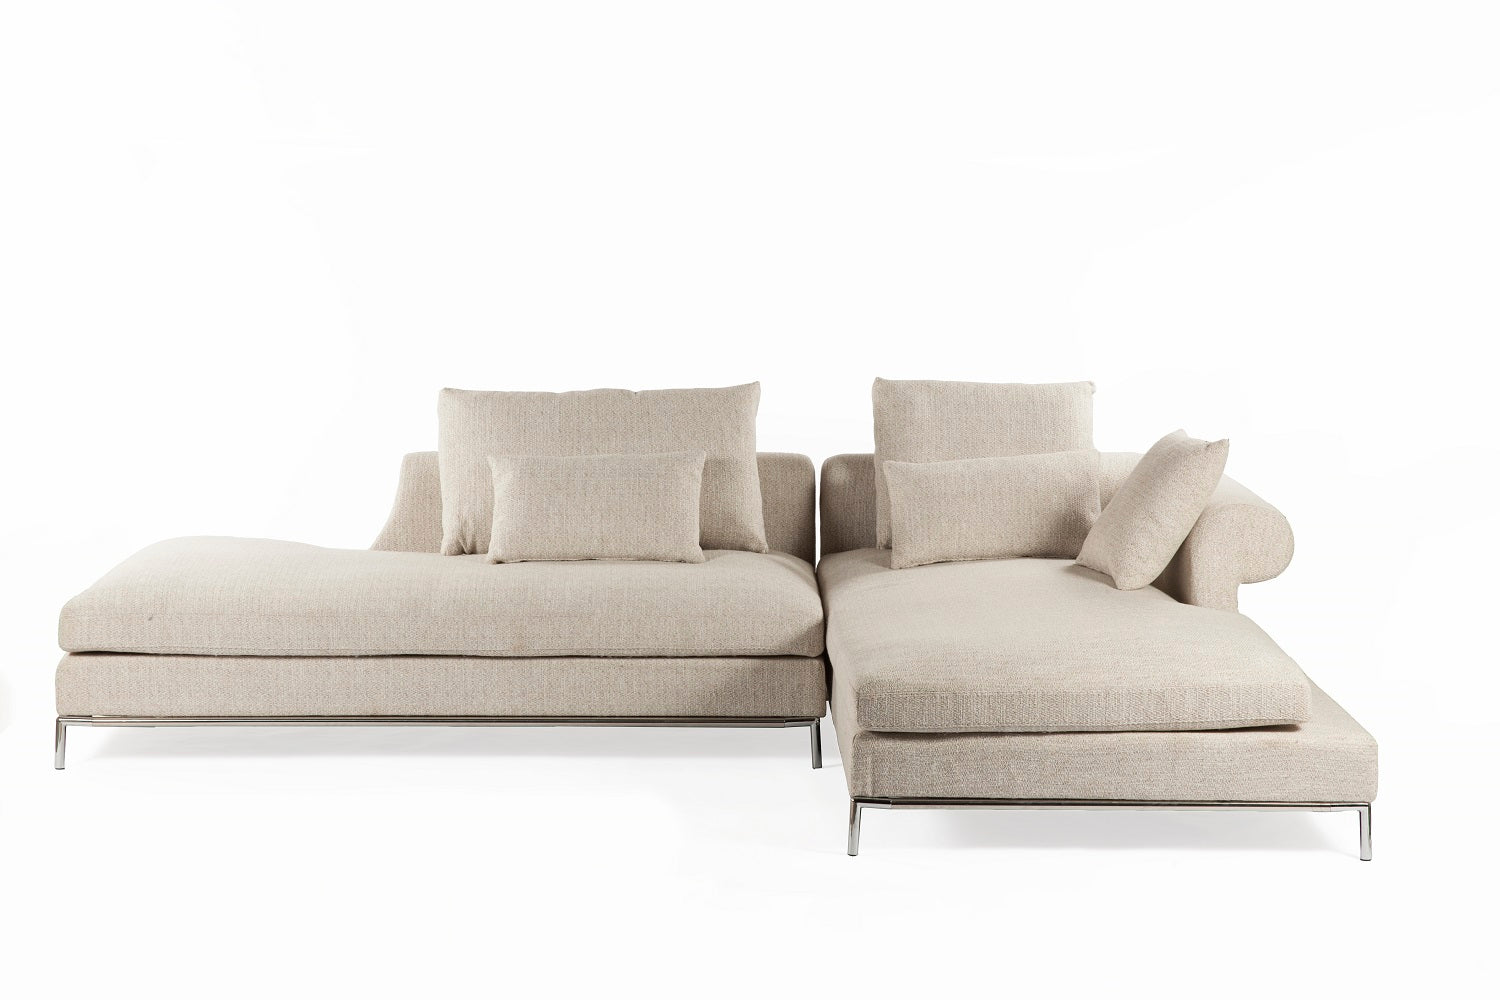 The Scandicci Sectional [FQS009BEIGE]